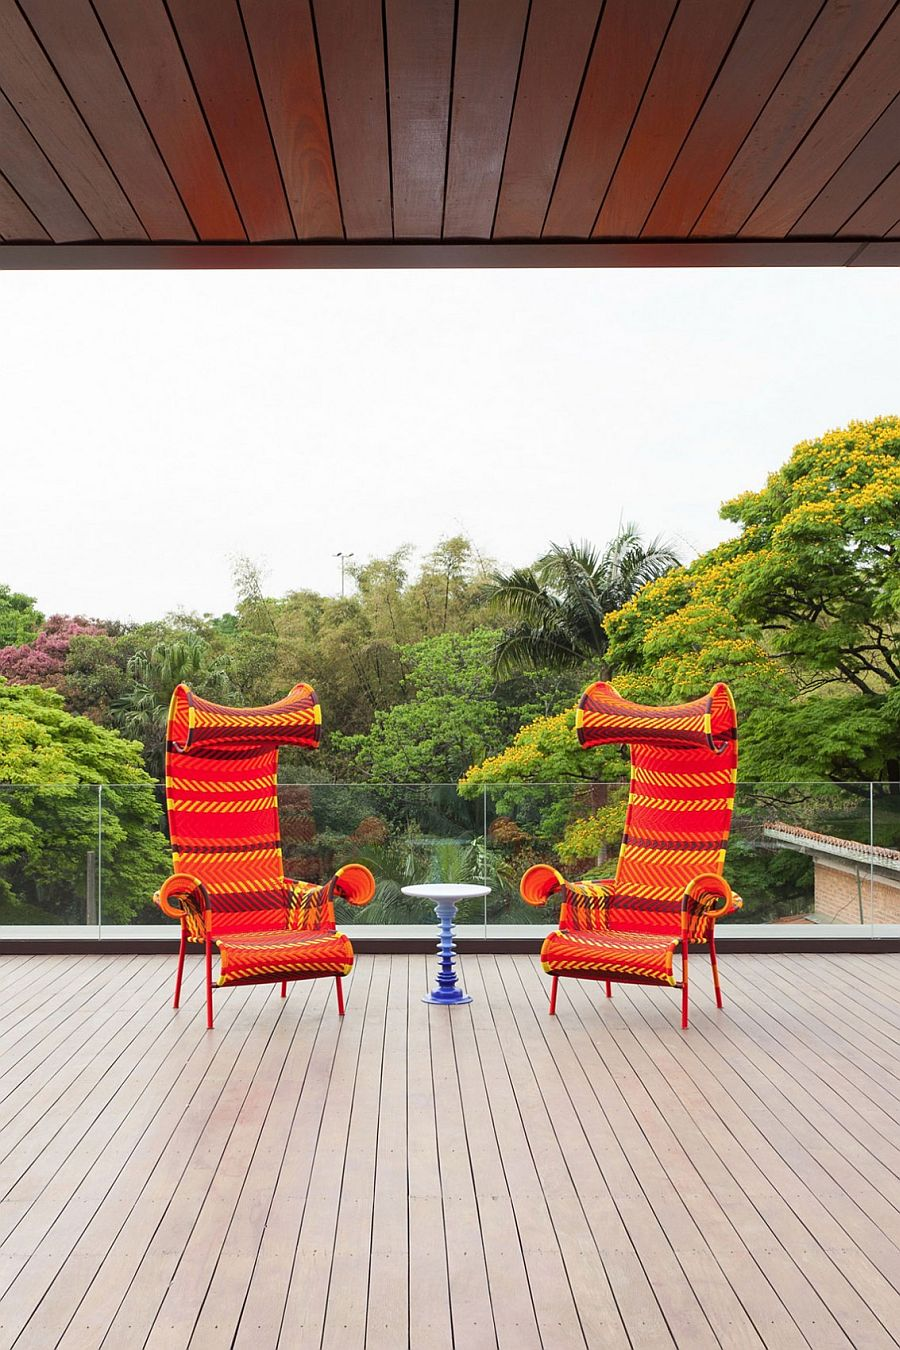 Lavish wooden deck of the Brazilian home with unabated view of canopy outside